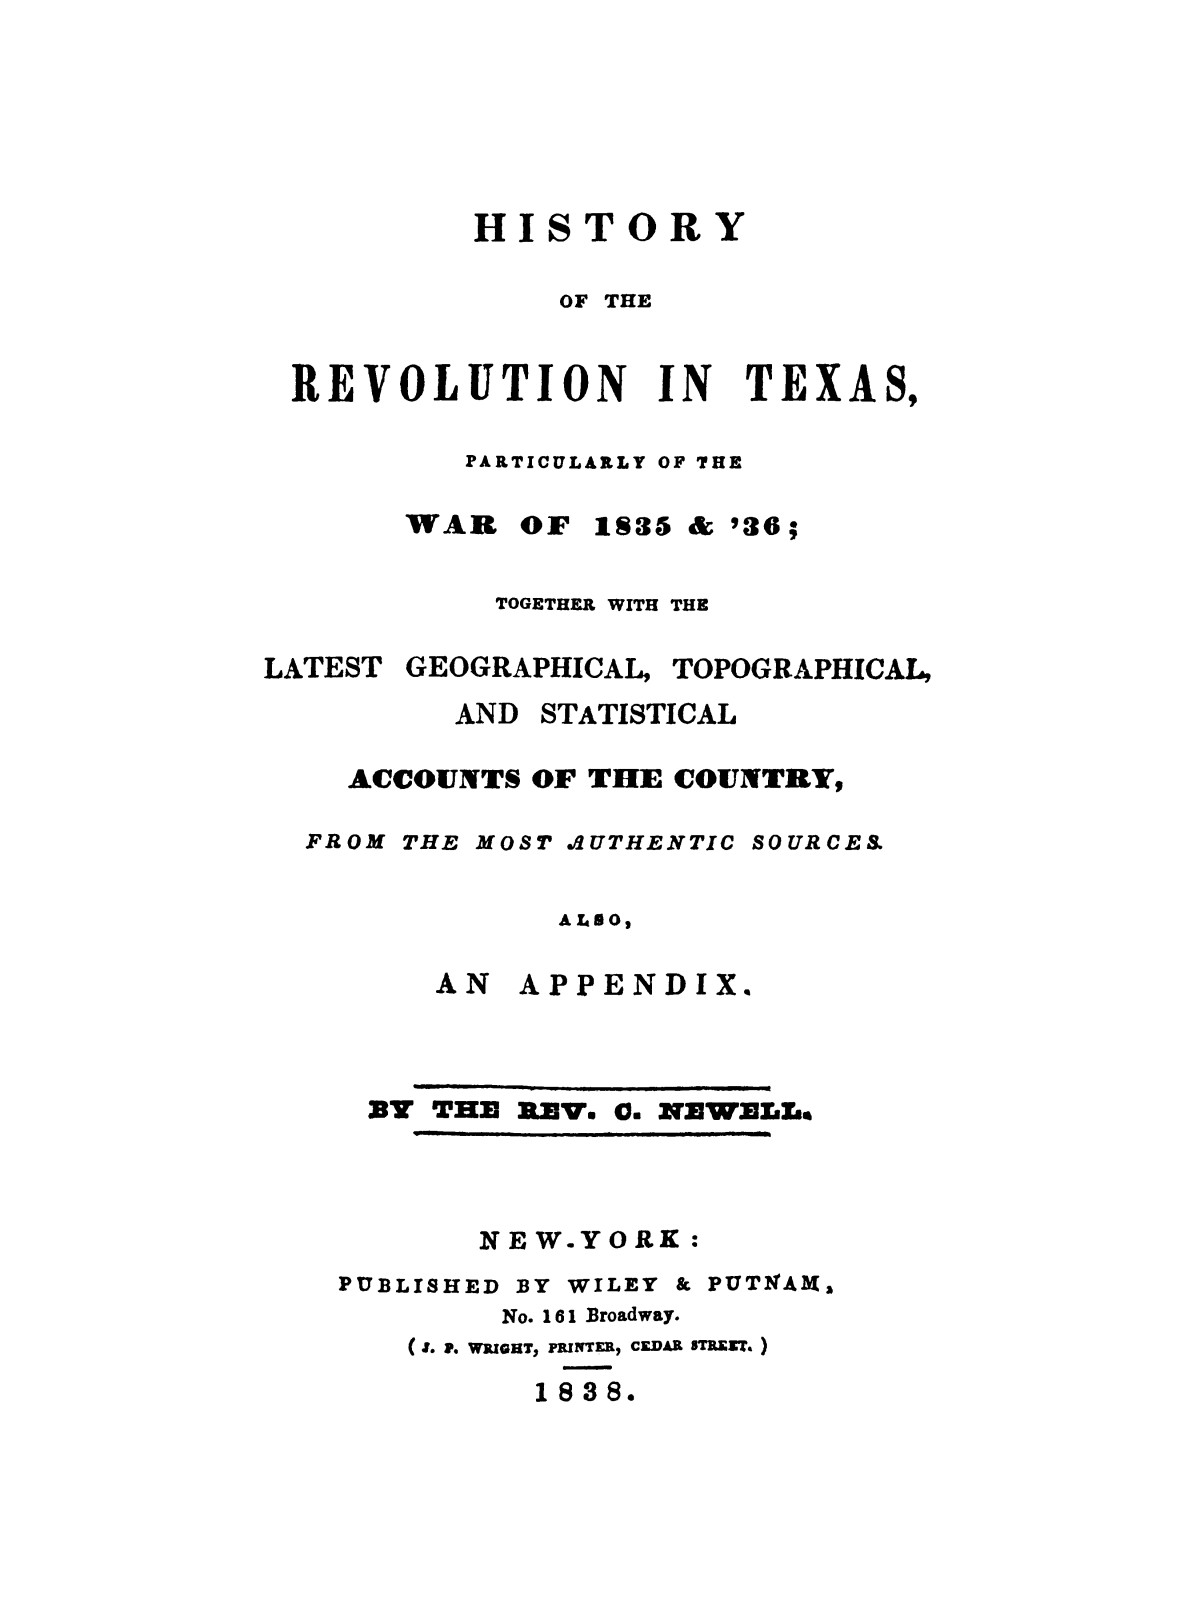 History of the revolution in Texas, particularly of the war of 1835 & '36; together with the latest geographical, topographical, and statistical accounts of the country, from the most authentic sources. Also, an appendix. By the Rev. C. Newell.                                                                                                      [Sequence #]: 1 of 227